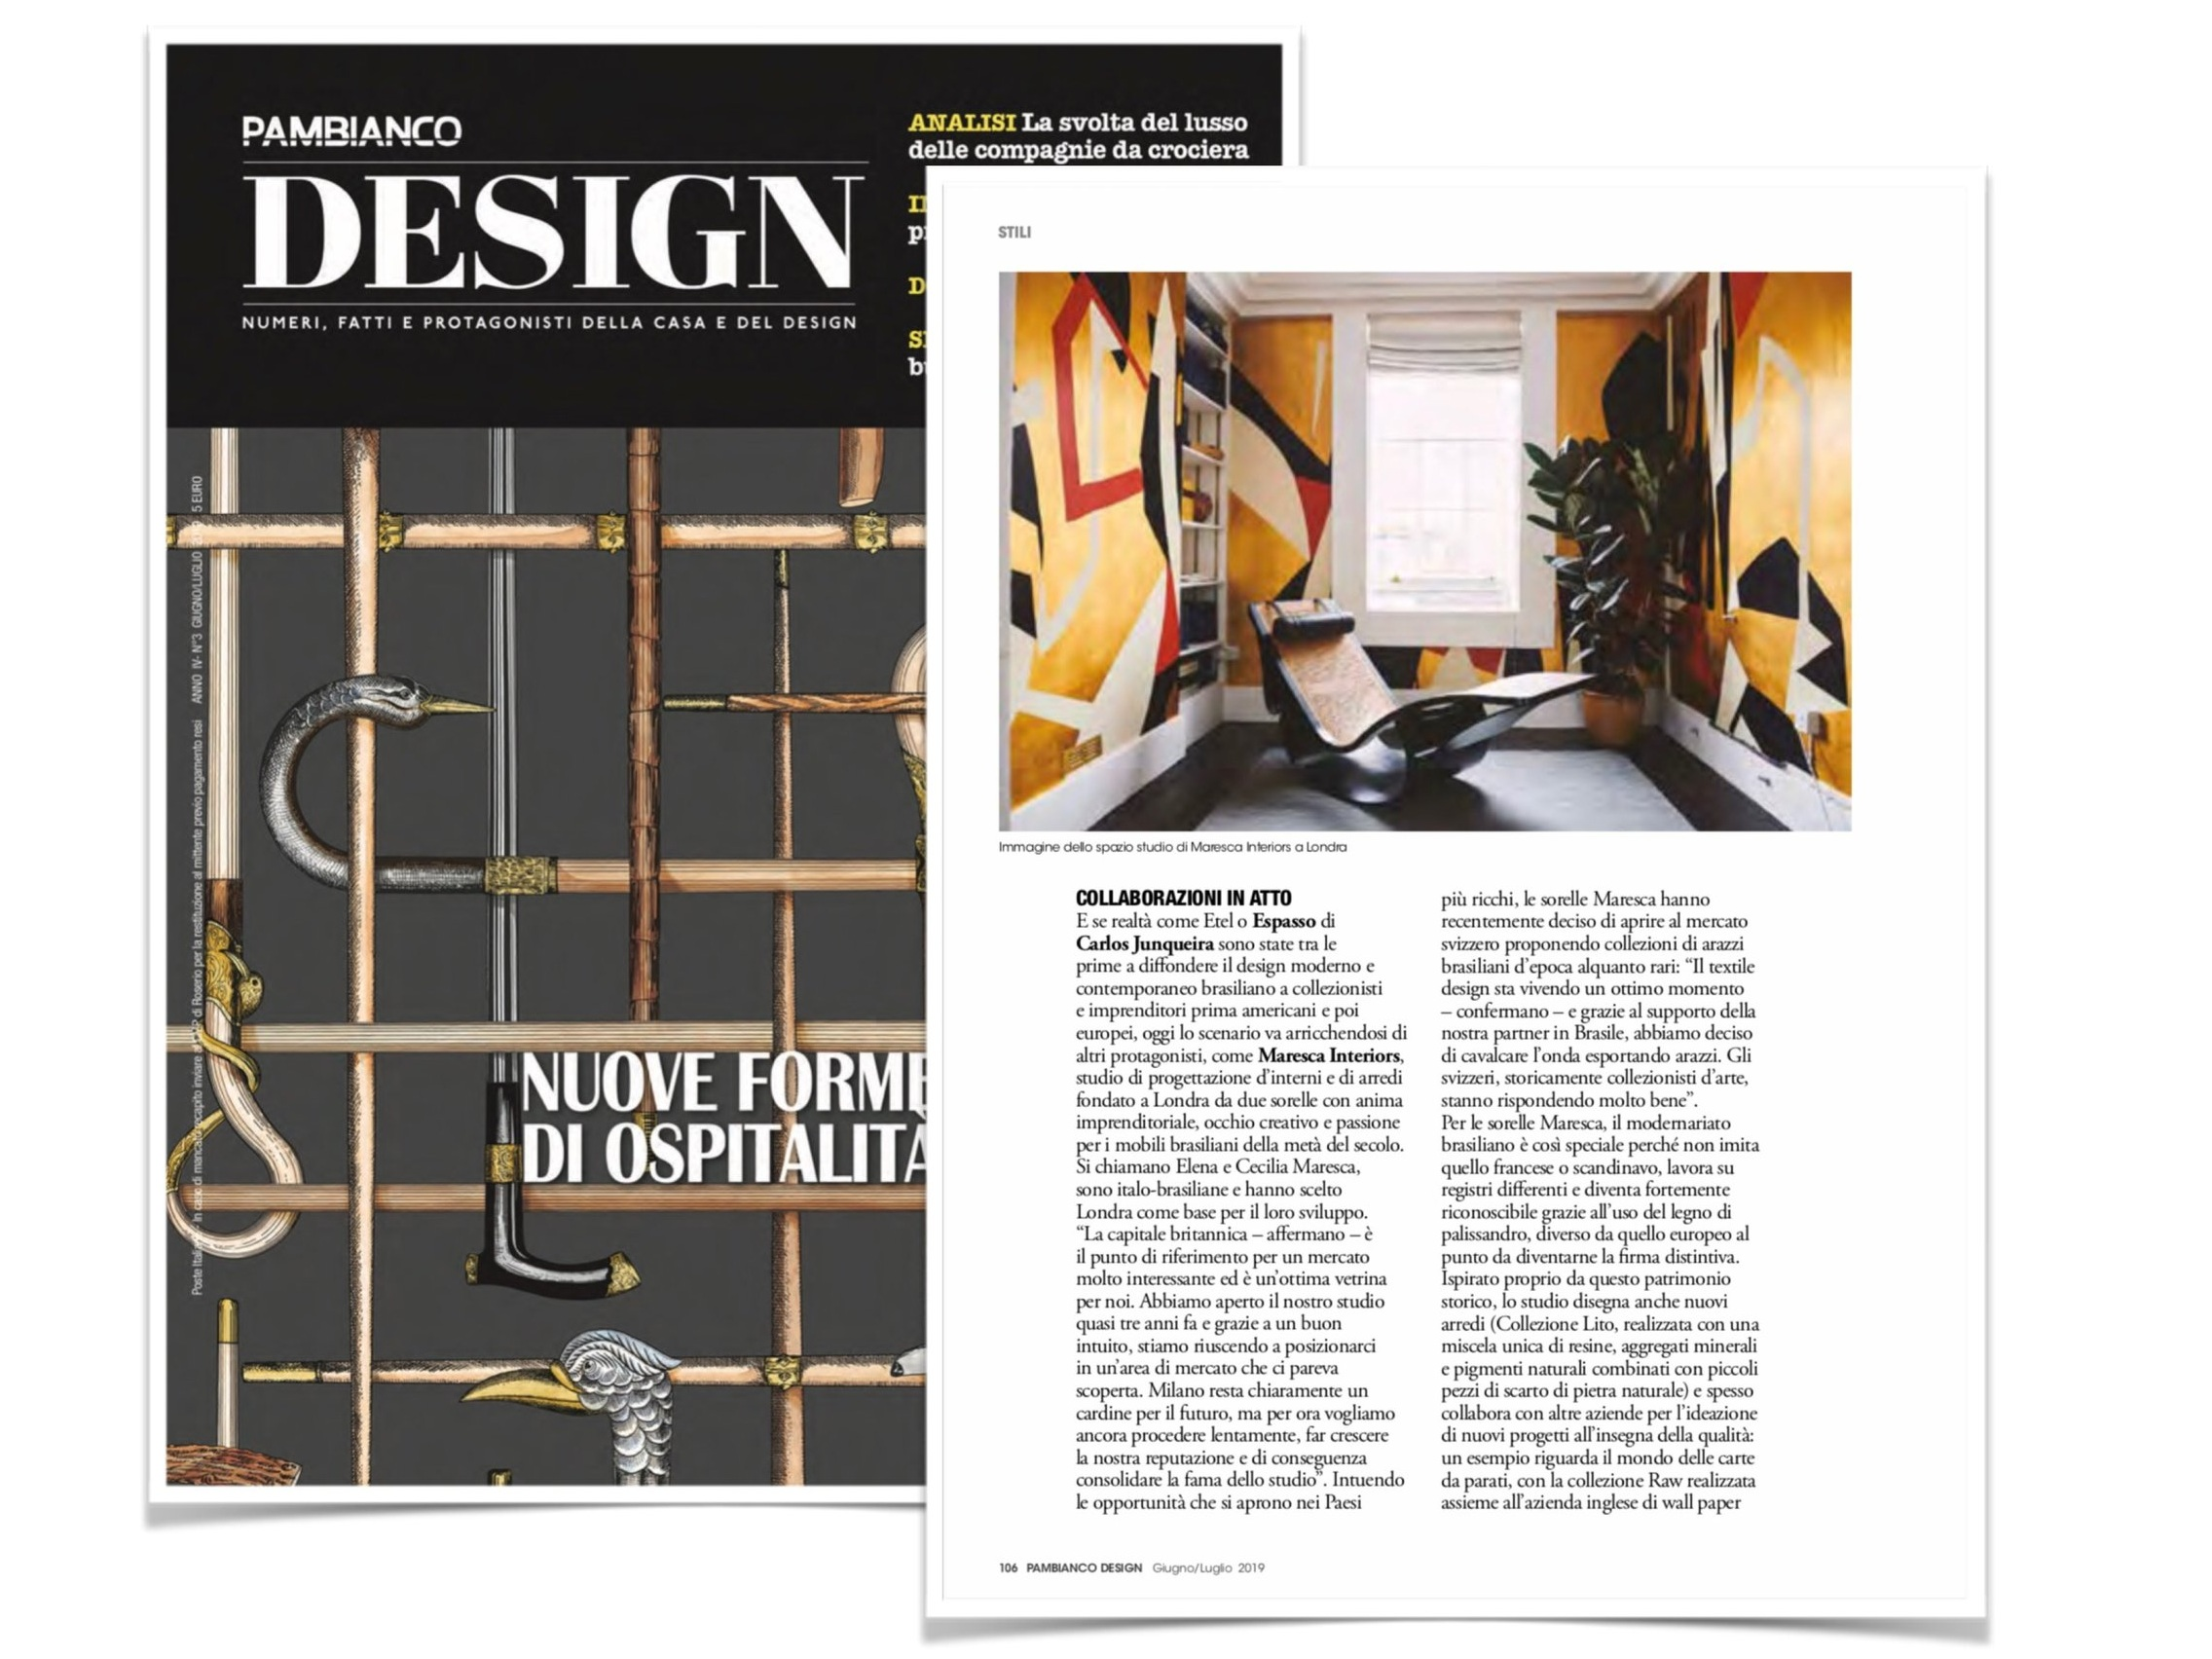 Pambianco Design - June 2019 - Feature on our Studio